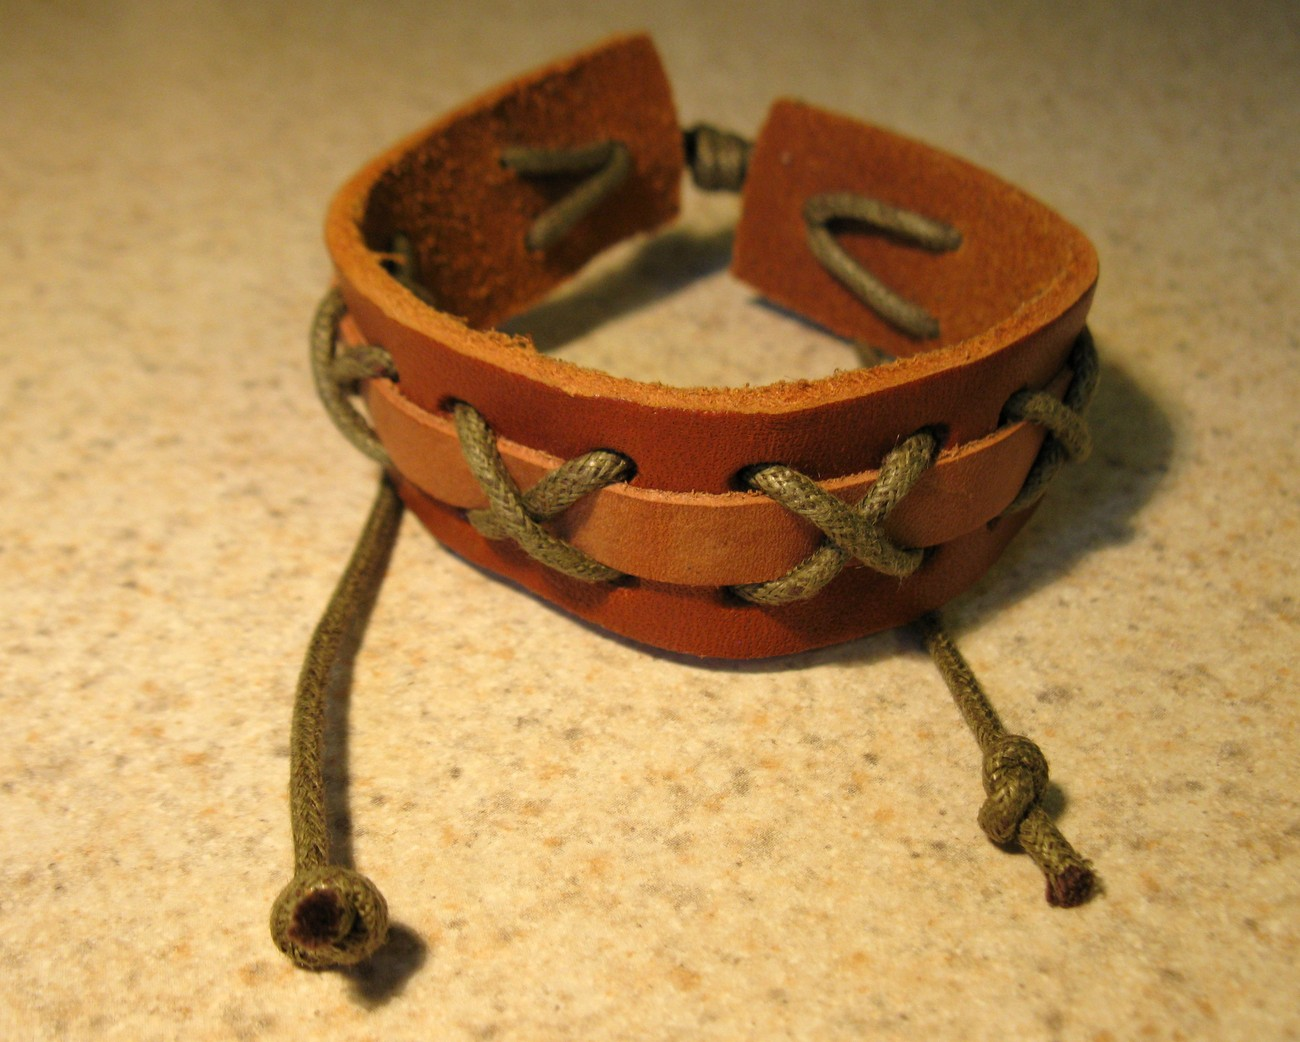 BRACELET MEN WOMEN TAN LEATHER CROSS-STITCH UNISEX New #40